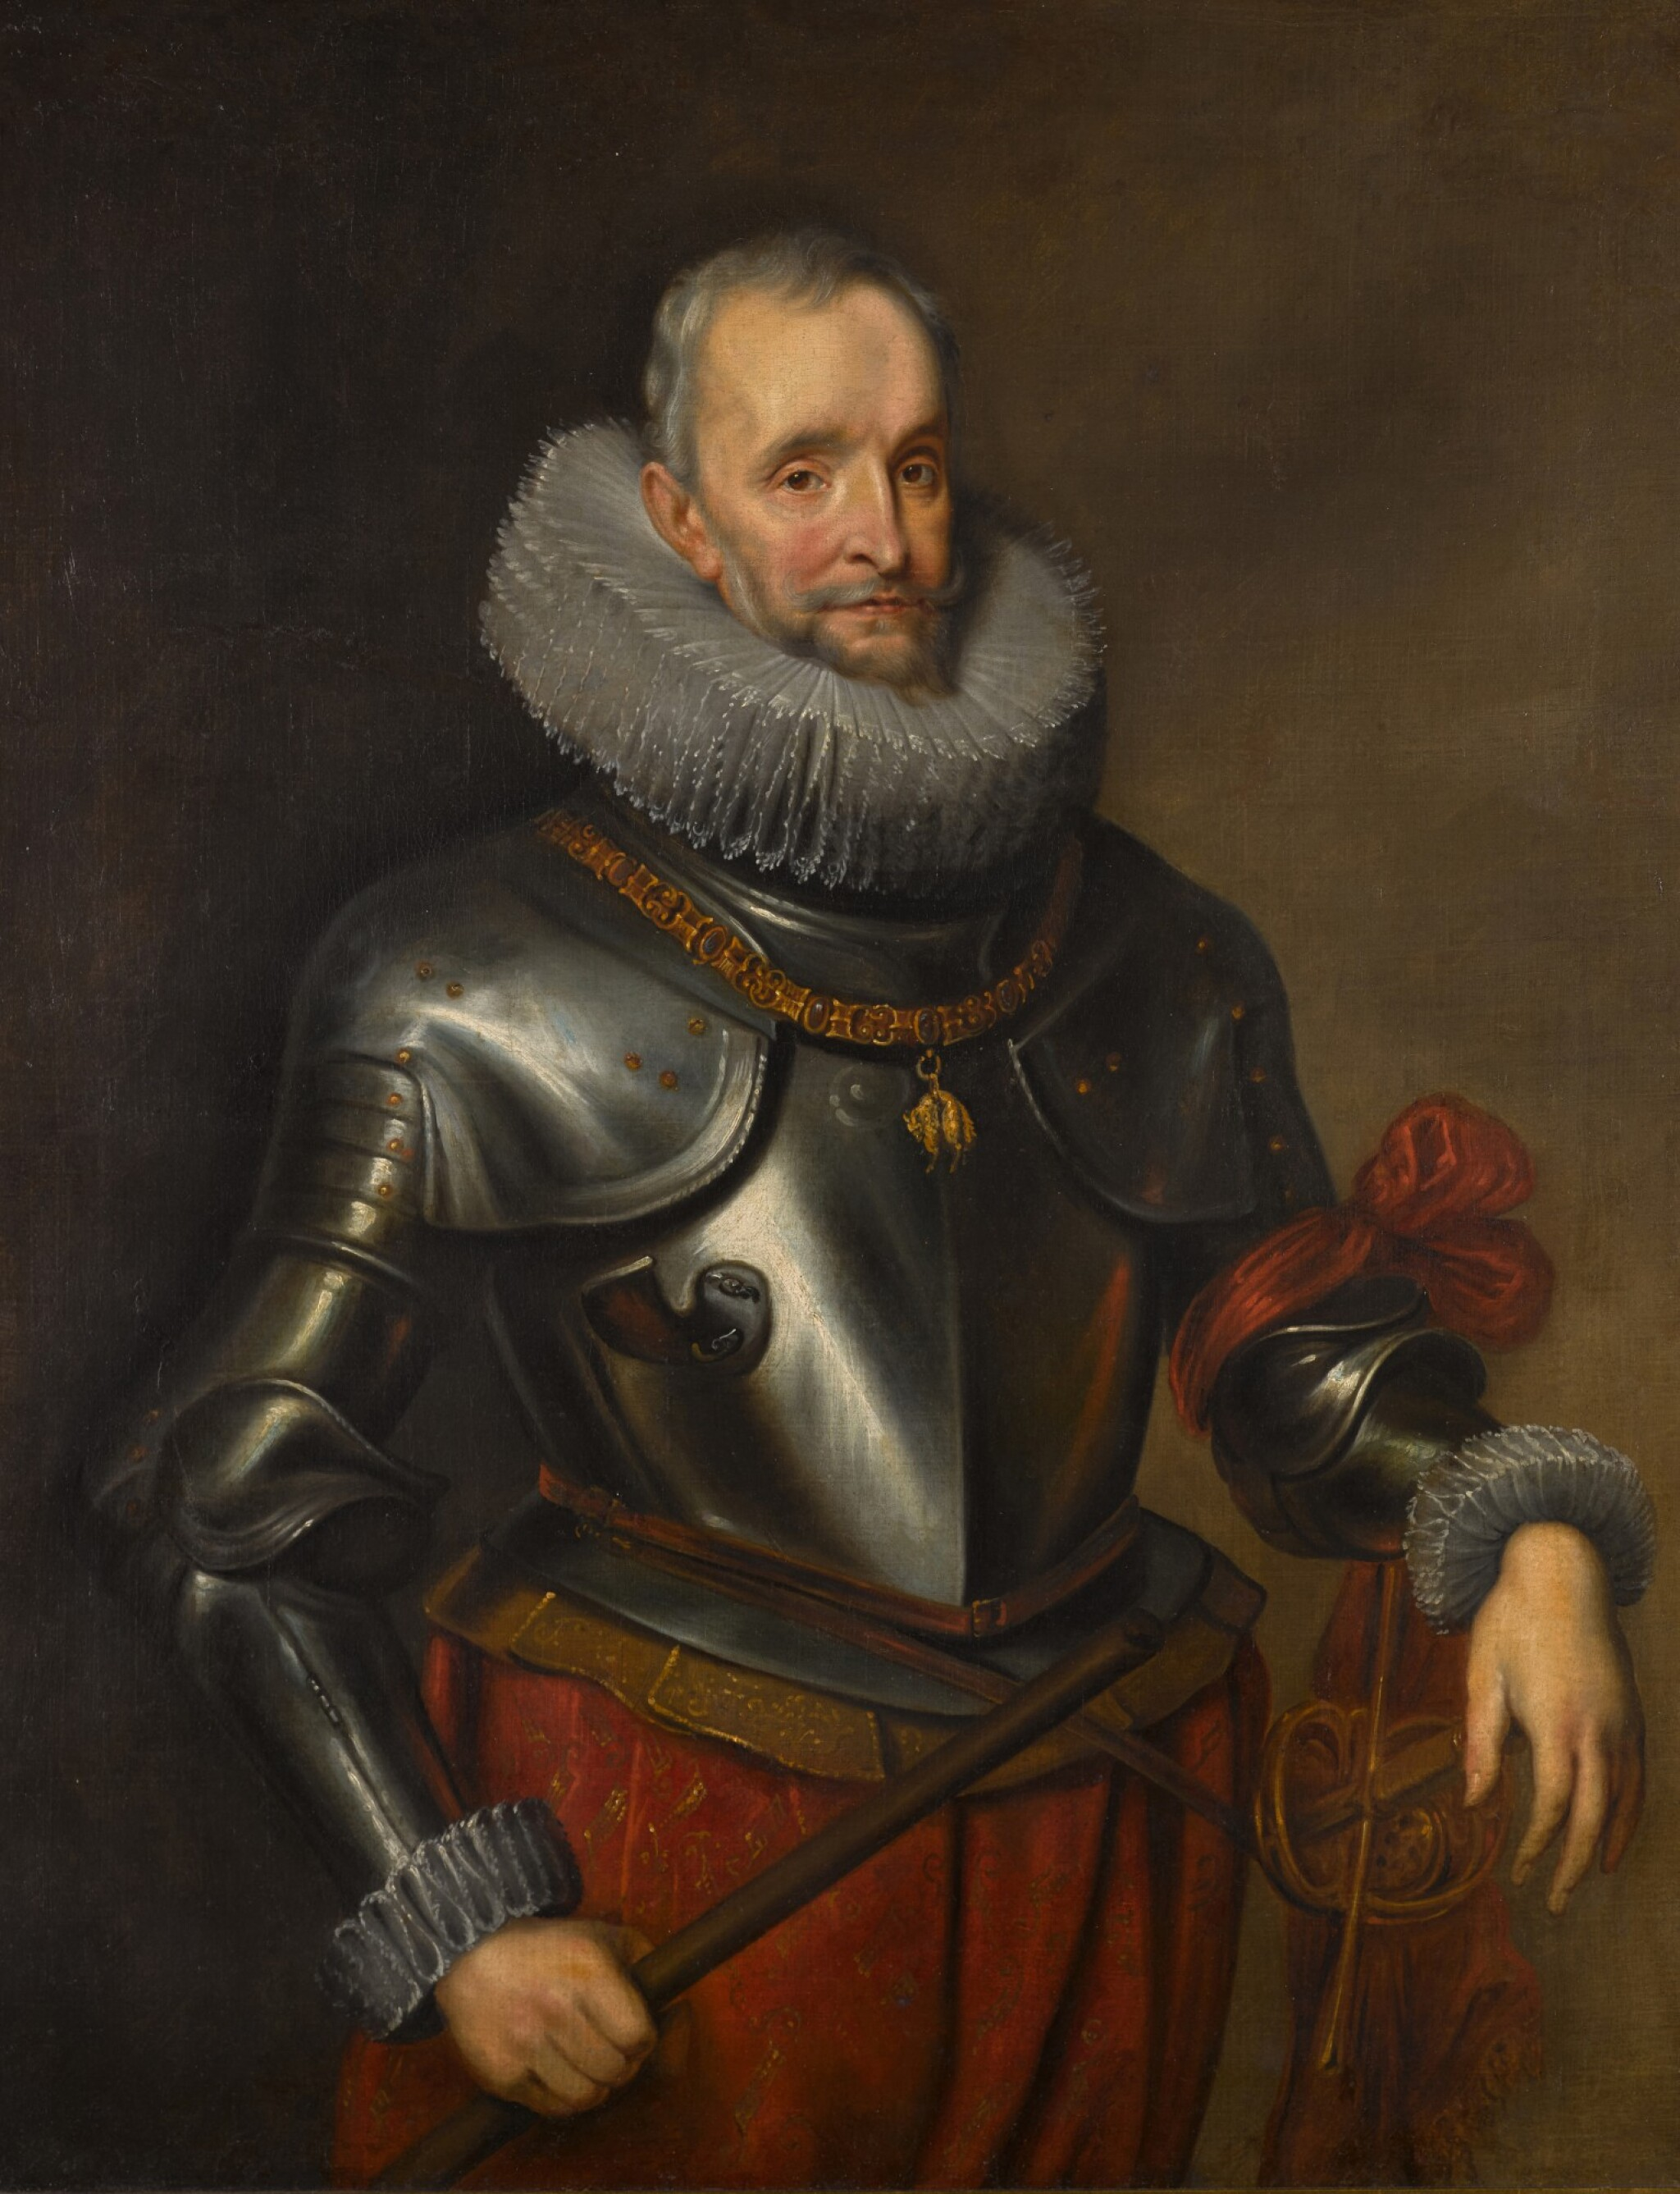 View 1 of Lot 133. Portrait of Ambrogio Spinola, 1st Marquess of Los Balbases (1569-1630), three-quarter length, wearing a breastplate and the collar and badge of the Order of the Golden Fleece, a Field Marshal's baton in his right hand.